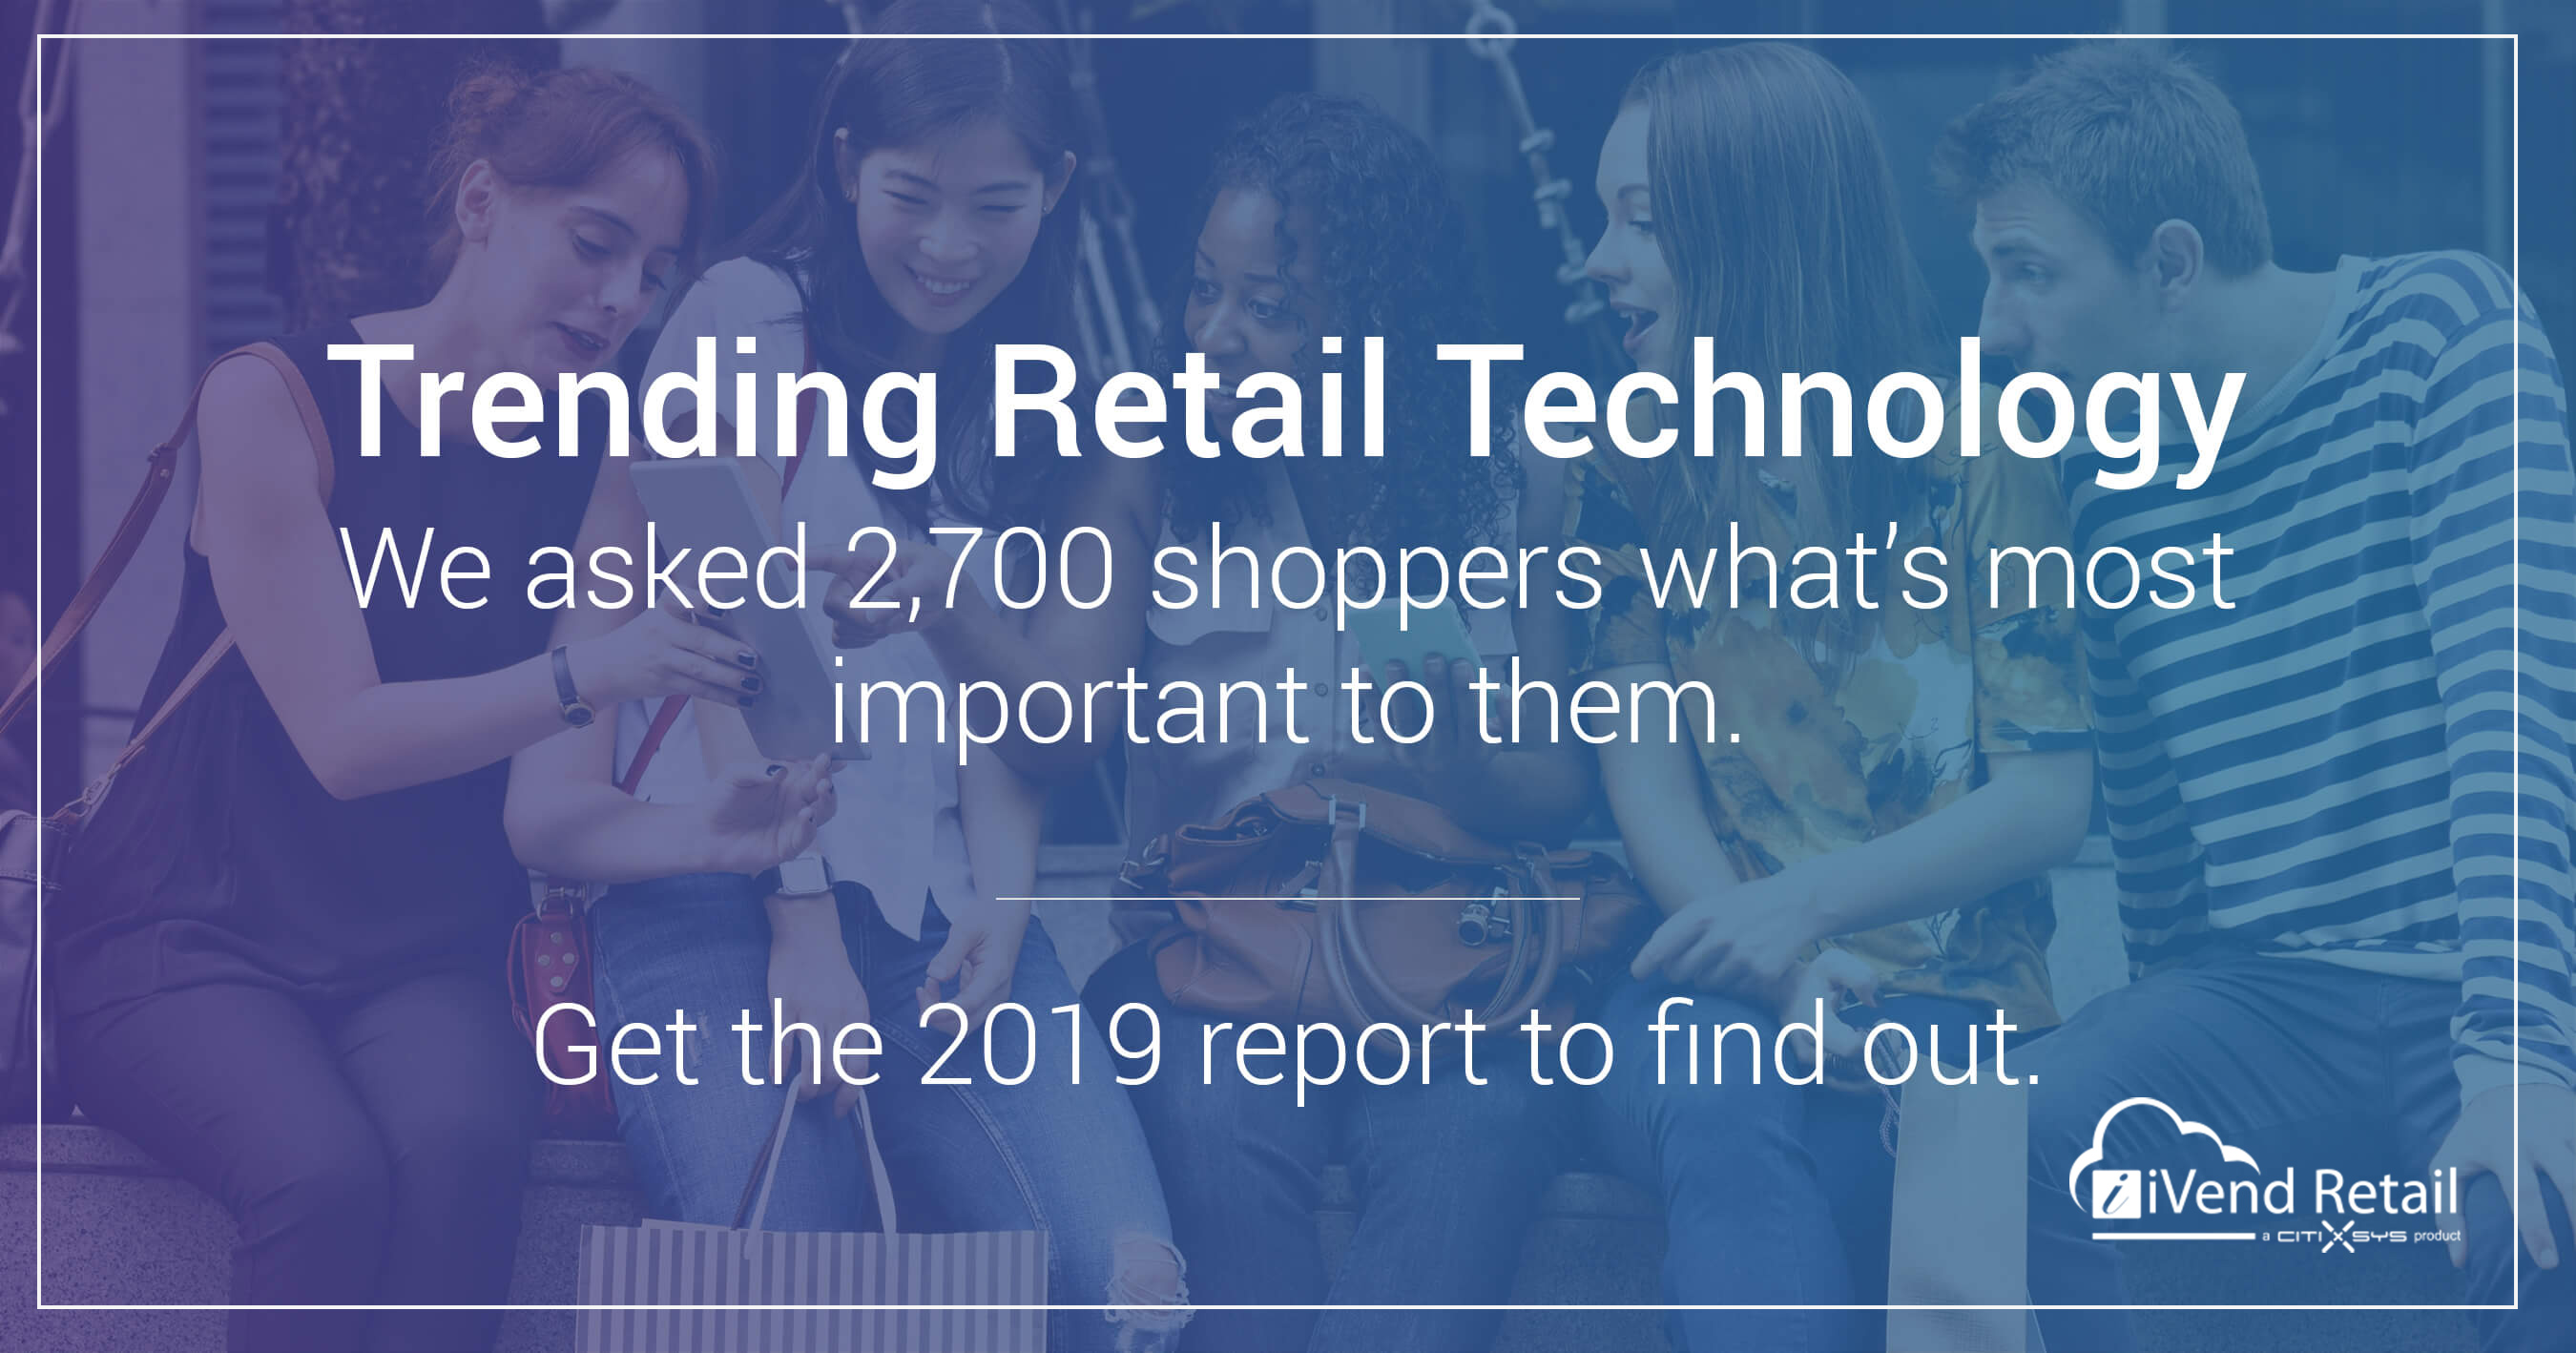 New Report Reveals Significant Changes in Consumer Shopping Trends